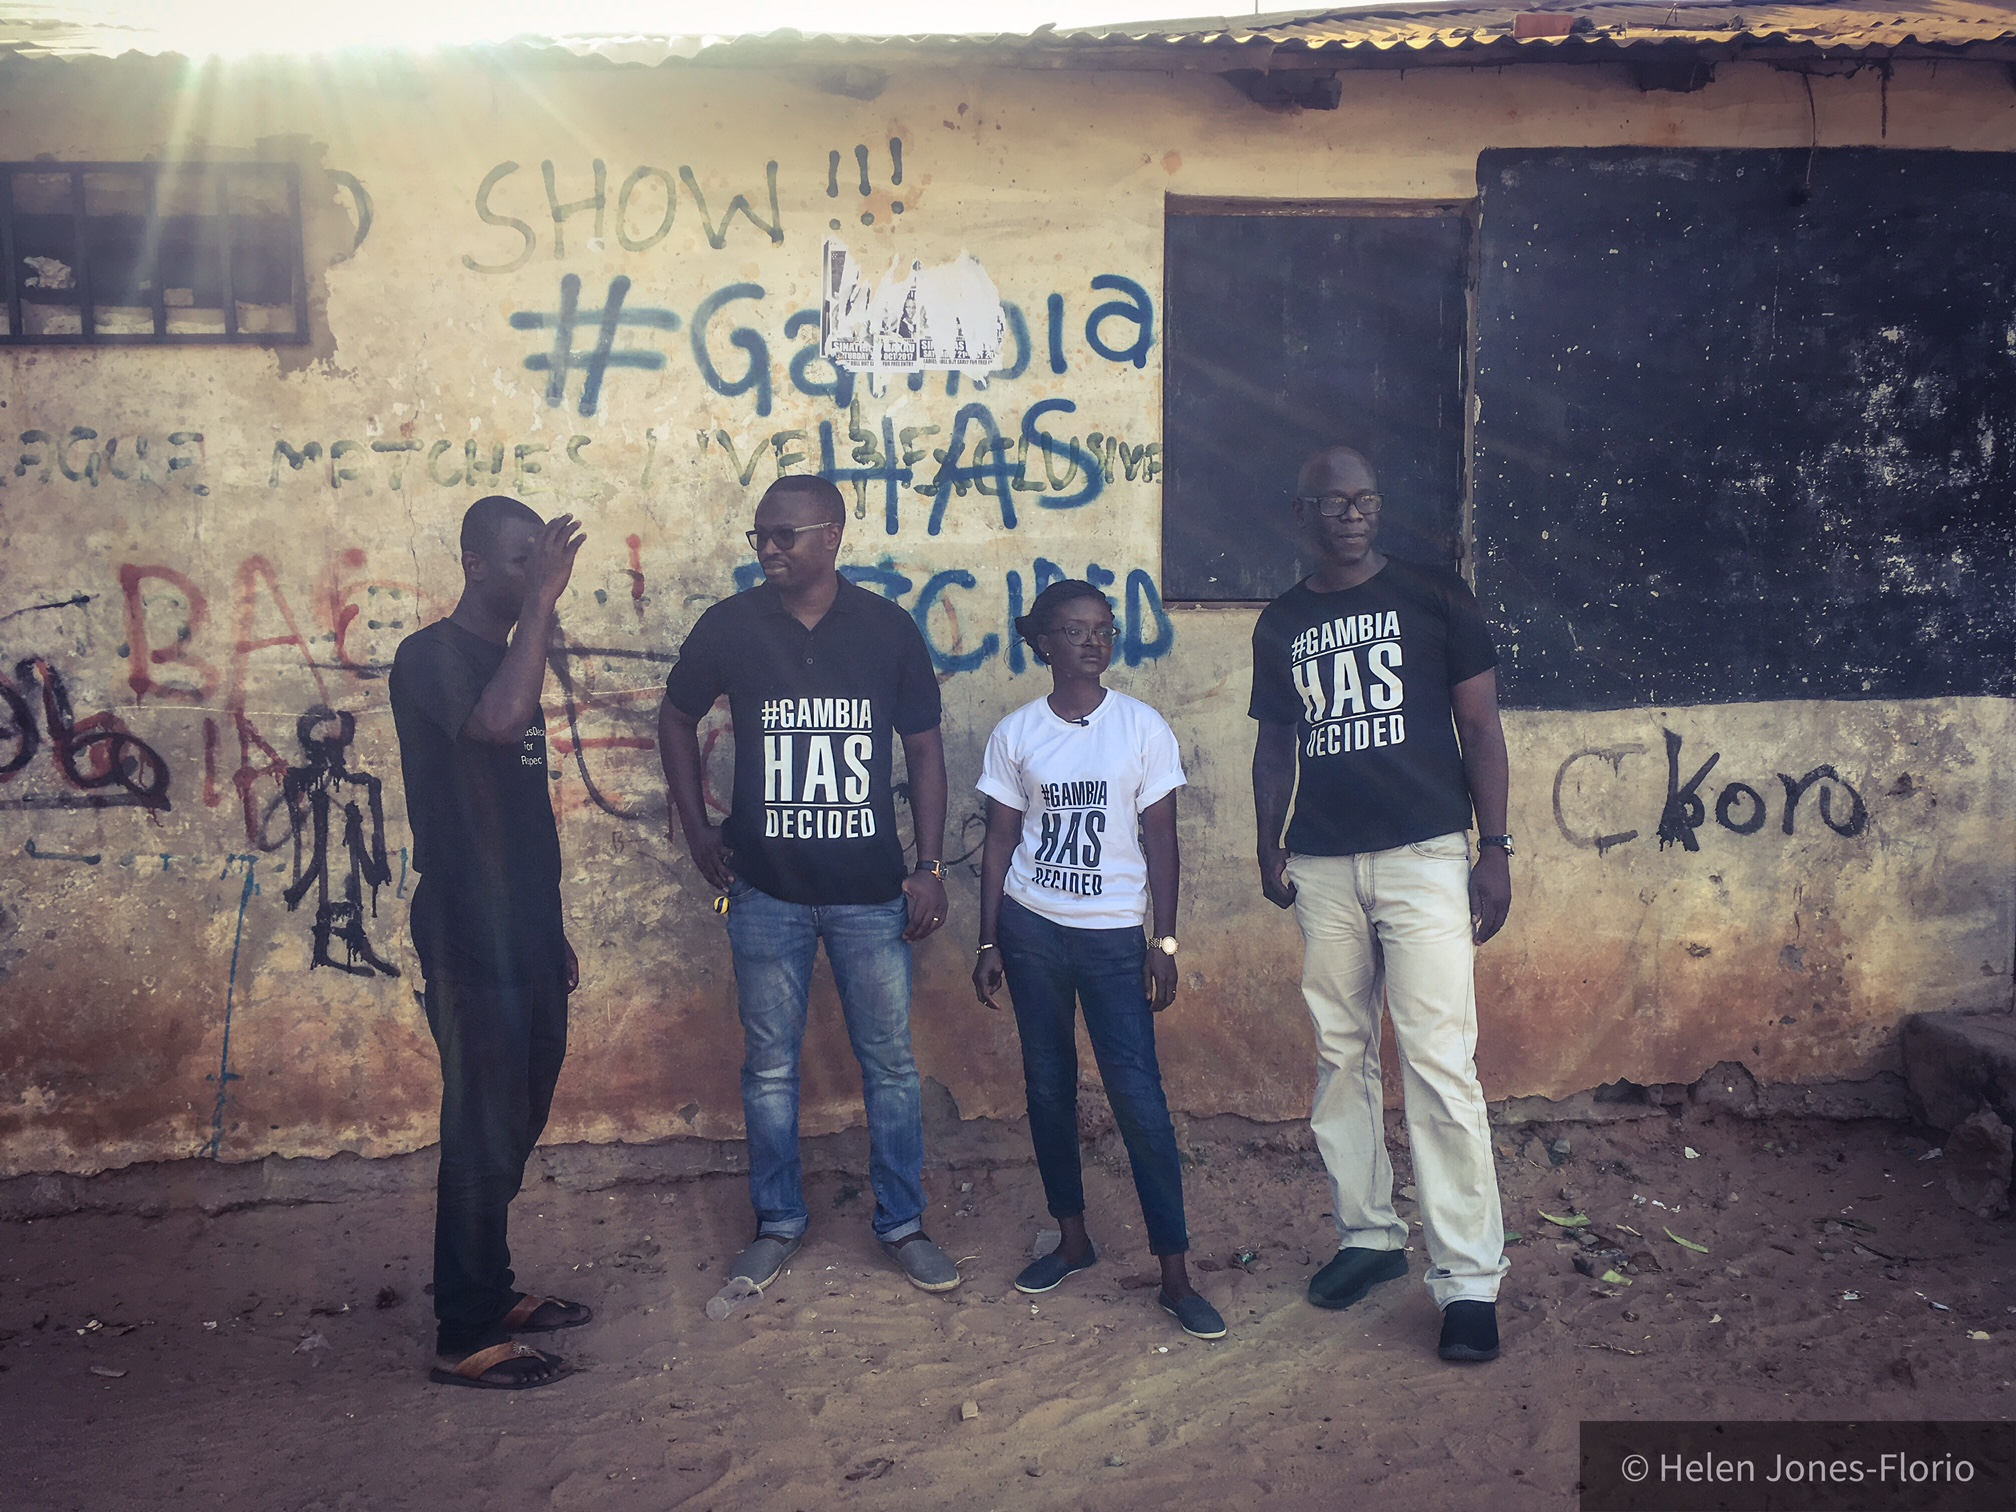 The facilitators of the #GambiaHasDecided campaign ©Helen Jones-Florio